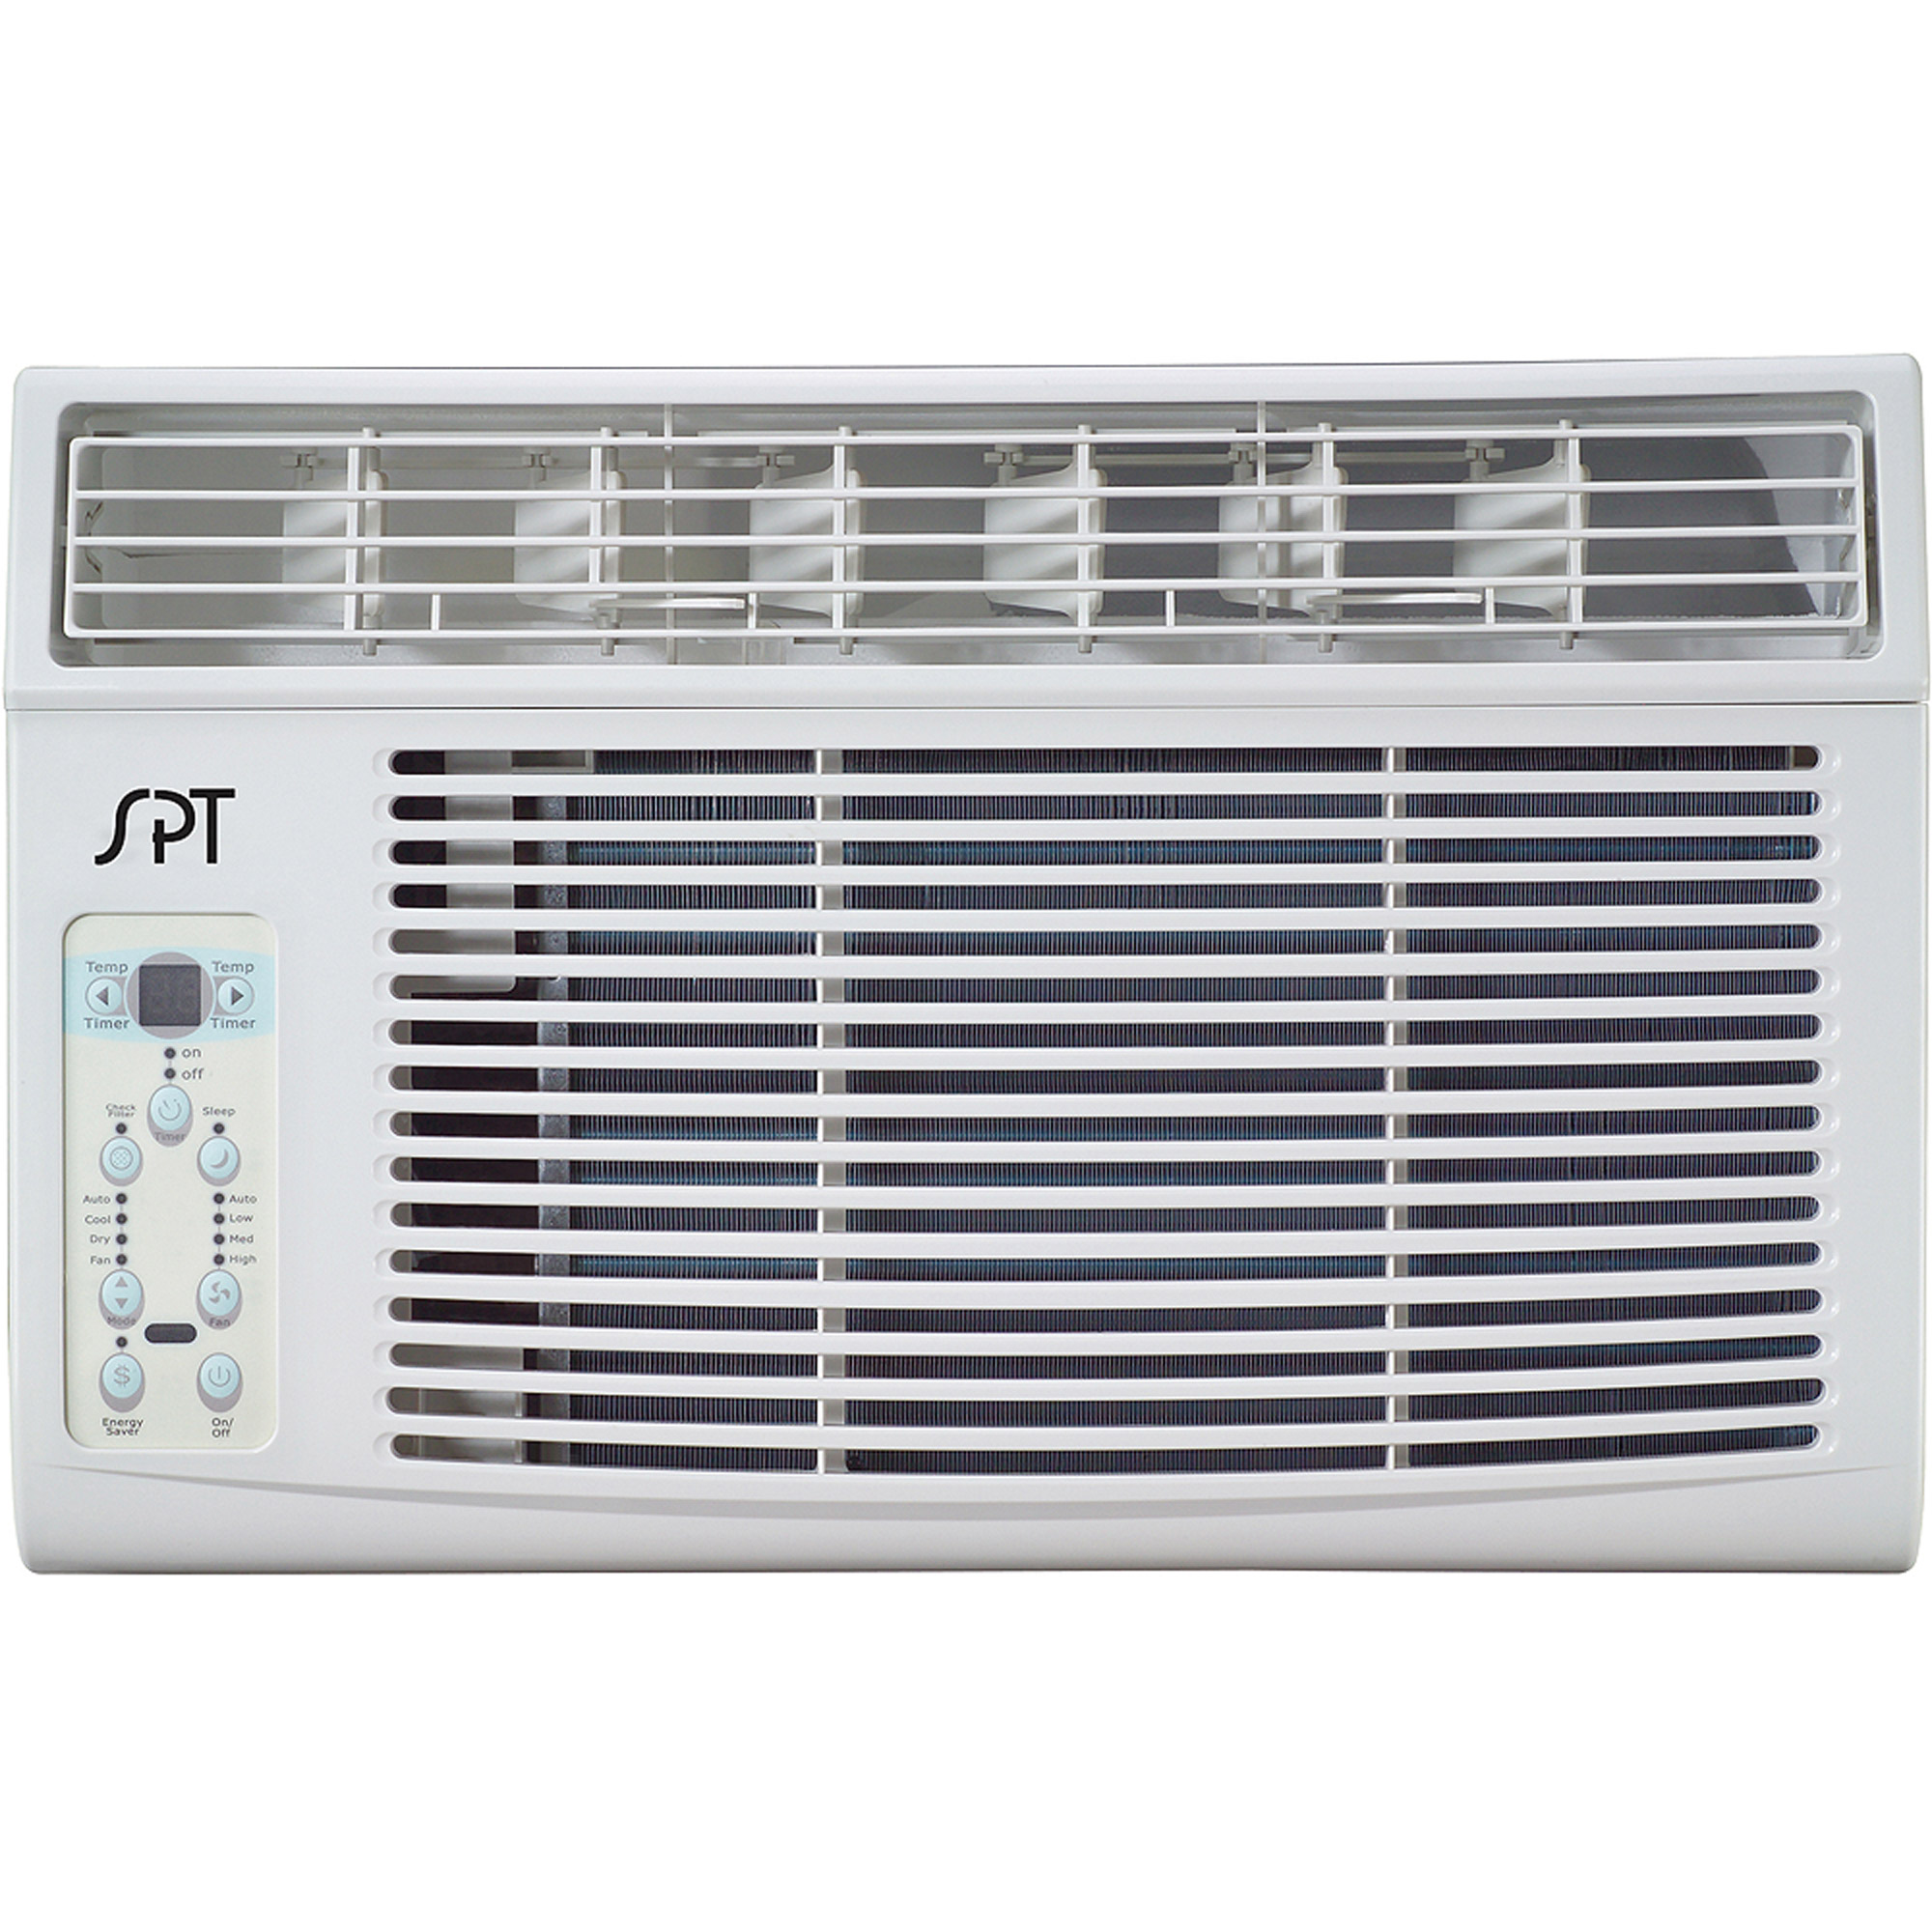 Sunpentown Evergy Star 8000 BTU Window Air Conditioner with Remote Control, White